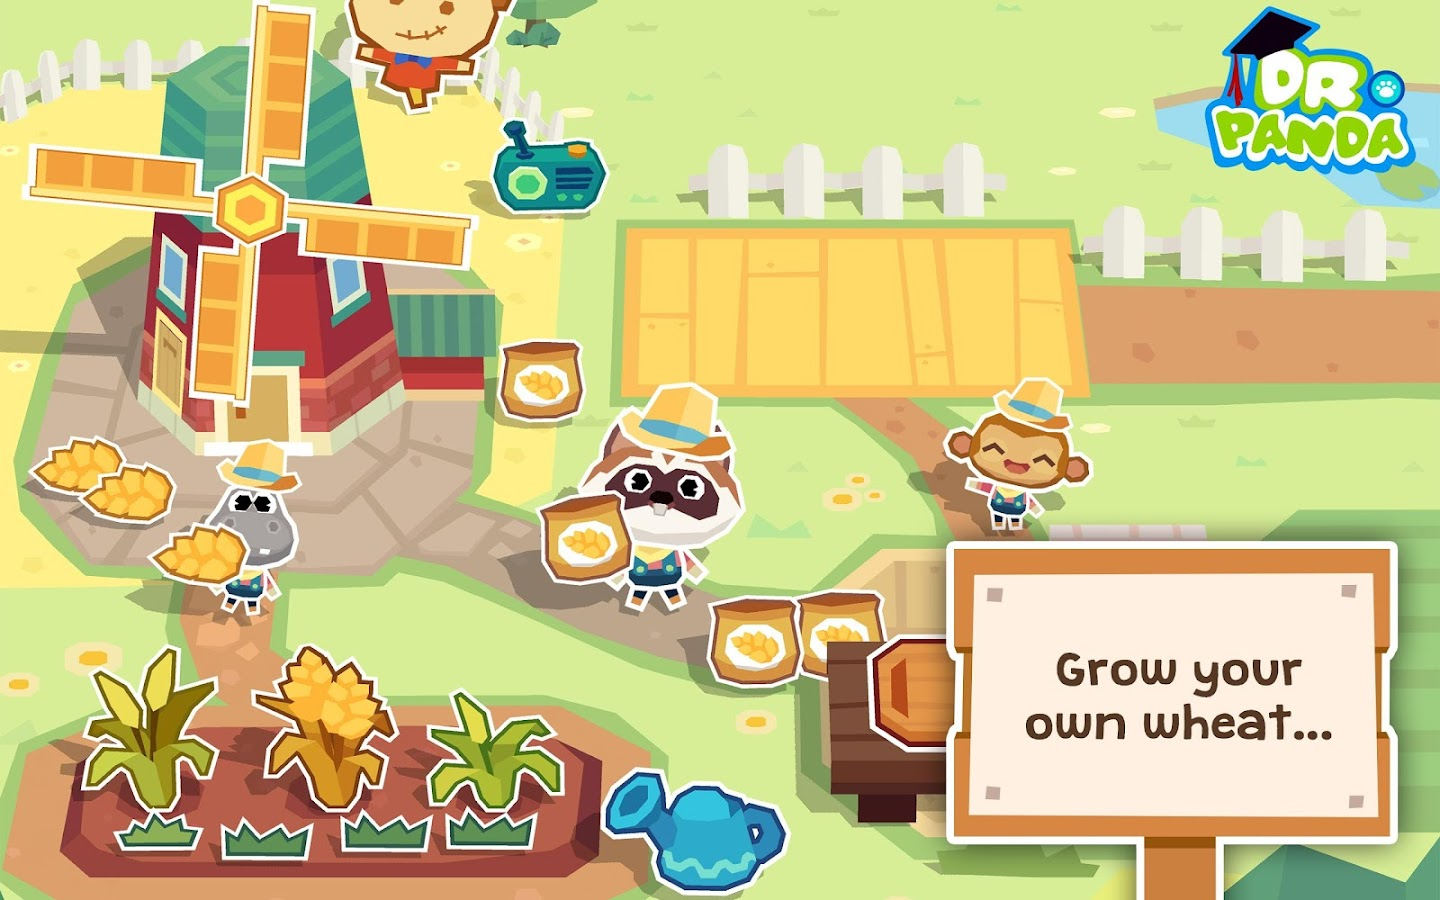 Dr. Panda Farm Screenshot 12